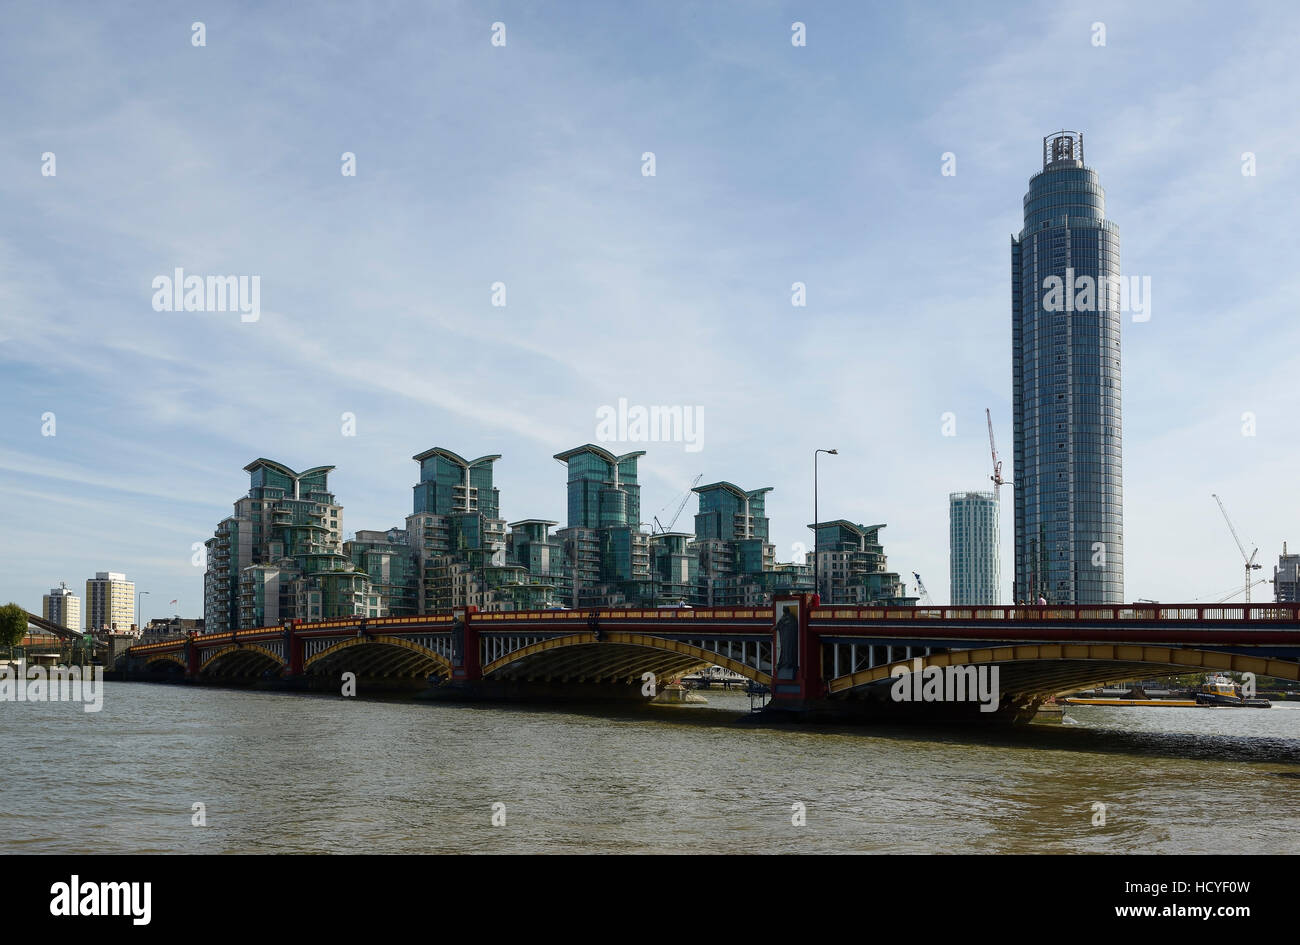 Vauxhall Bridge crossing the River Thames in London with apartment buildings in the background - Stock Image